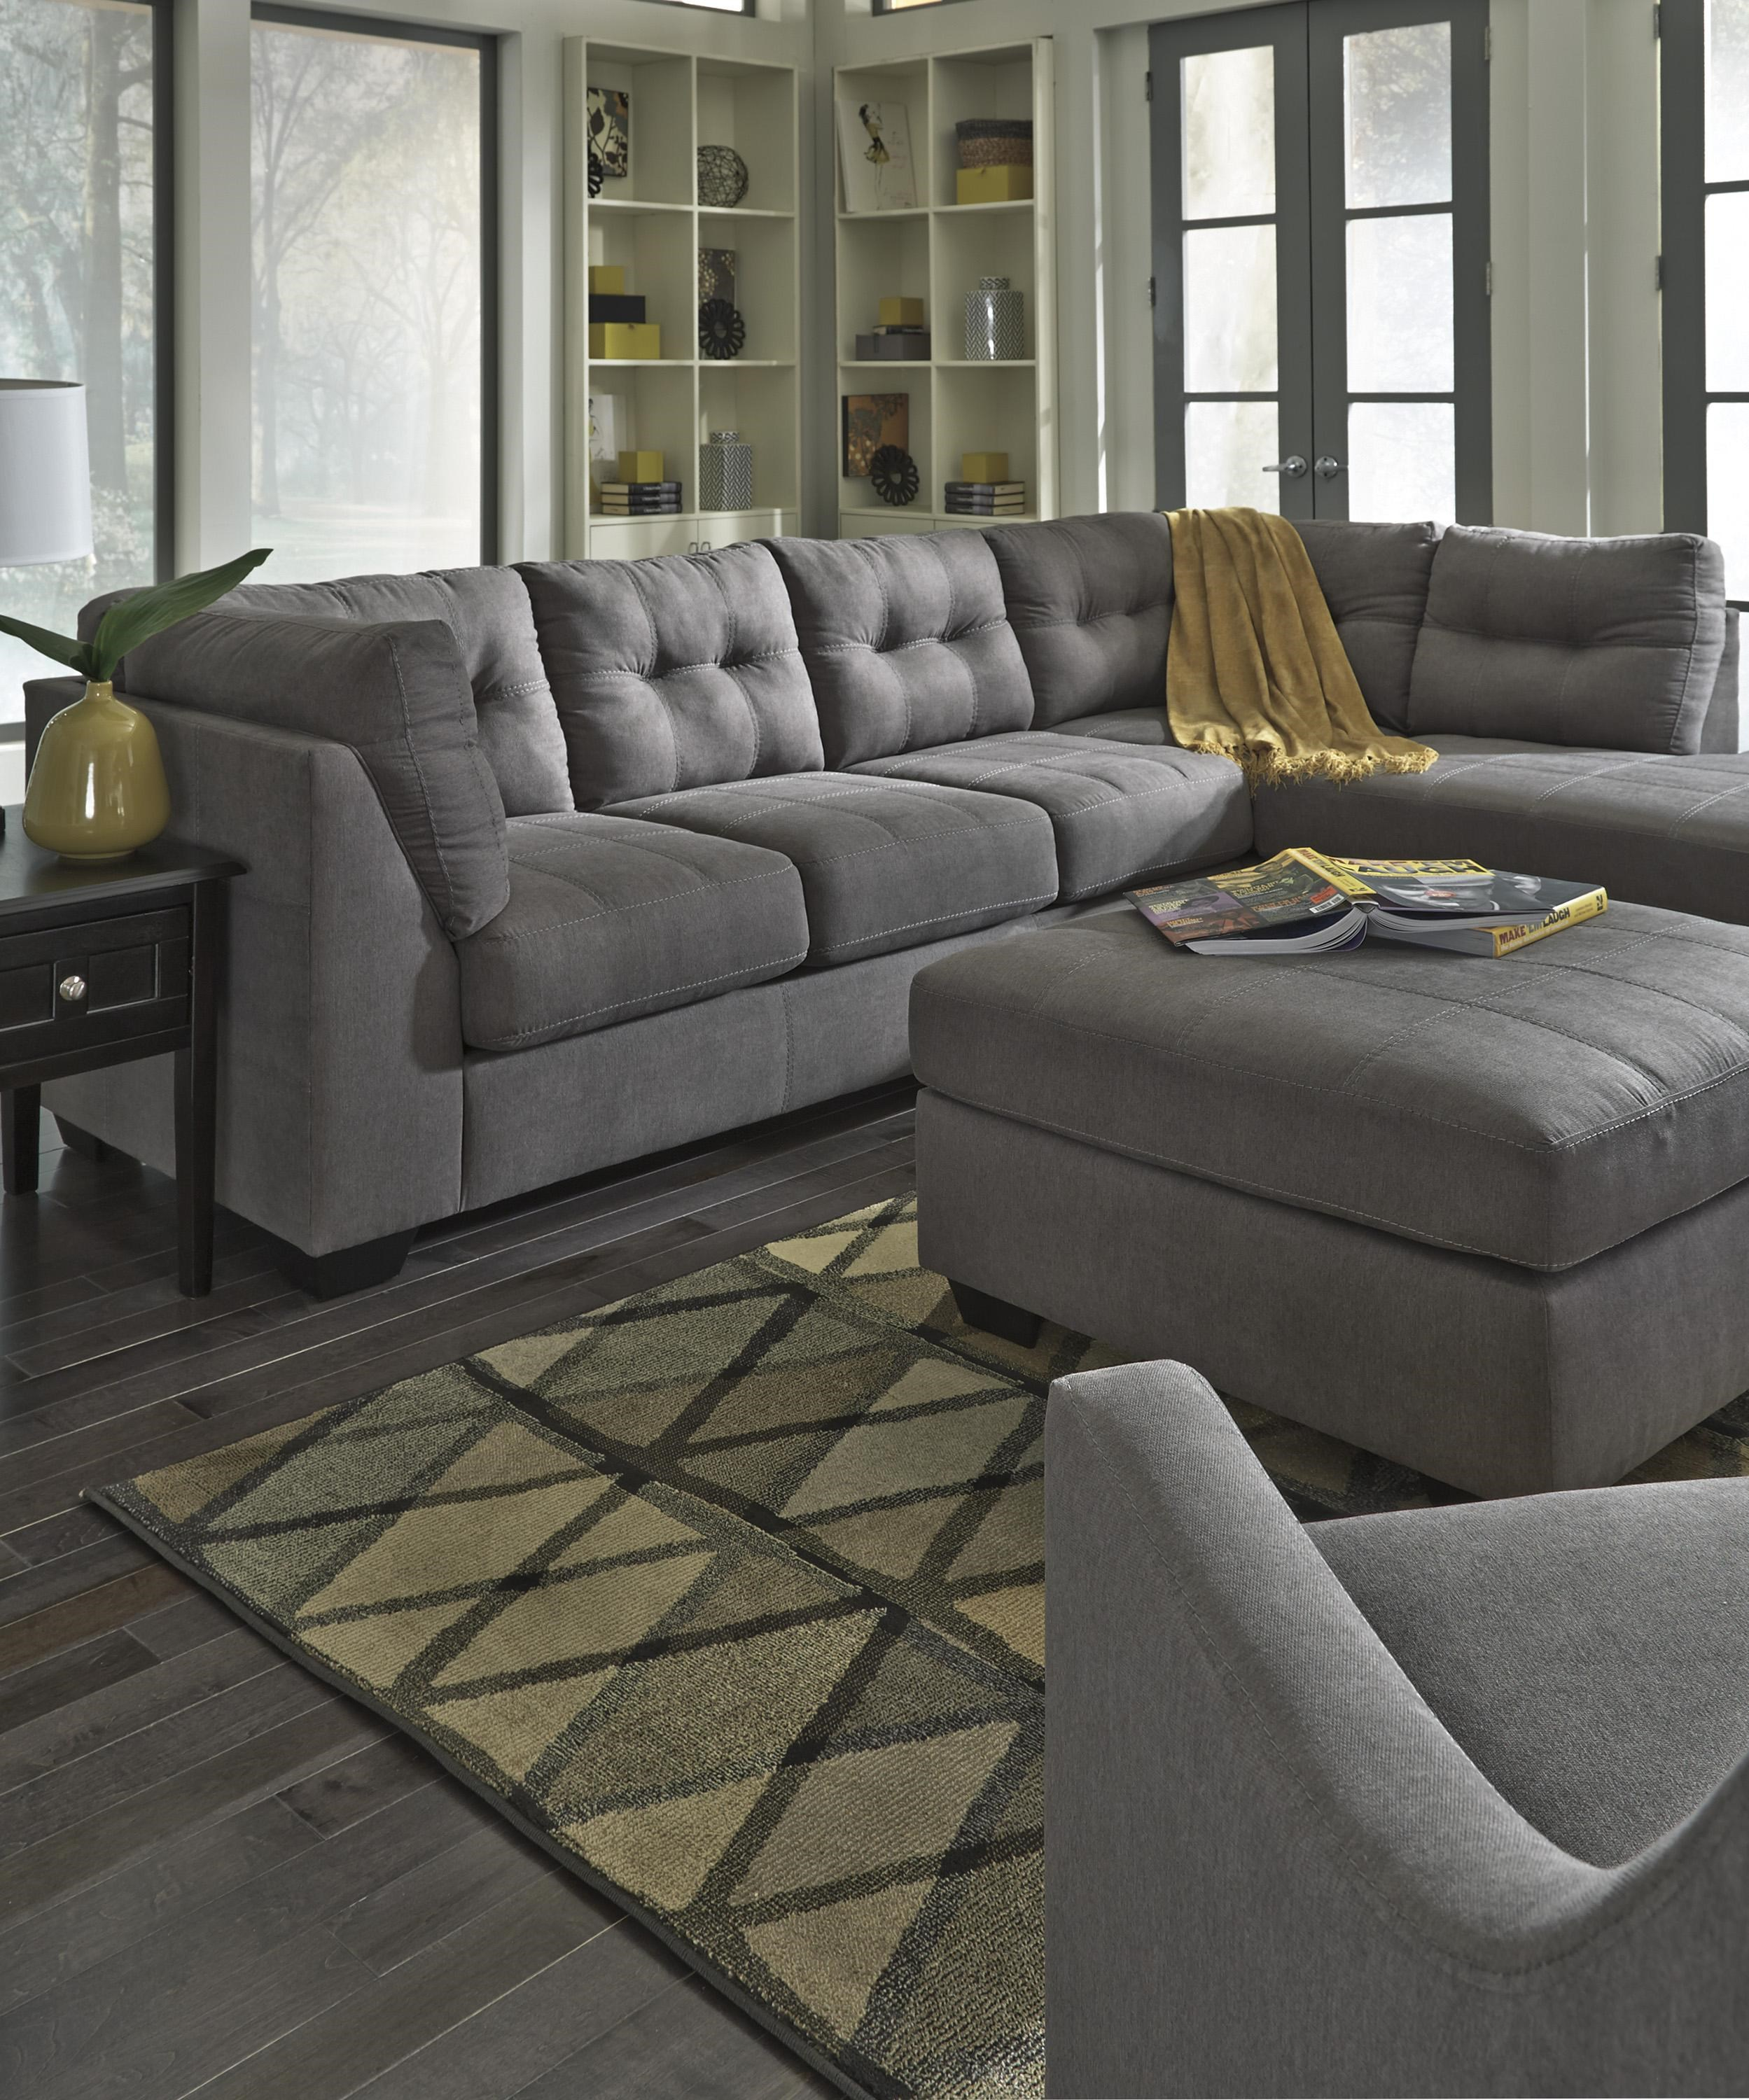 Shown in Charcoal Maier-Charcoal  sc 1 st  Dunk u0026 Bright Furniture : benchcraft sectional - Sectionals, Sofas & Couches